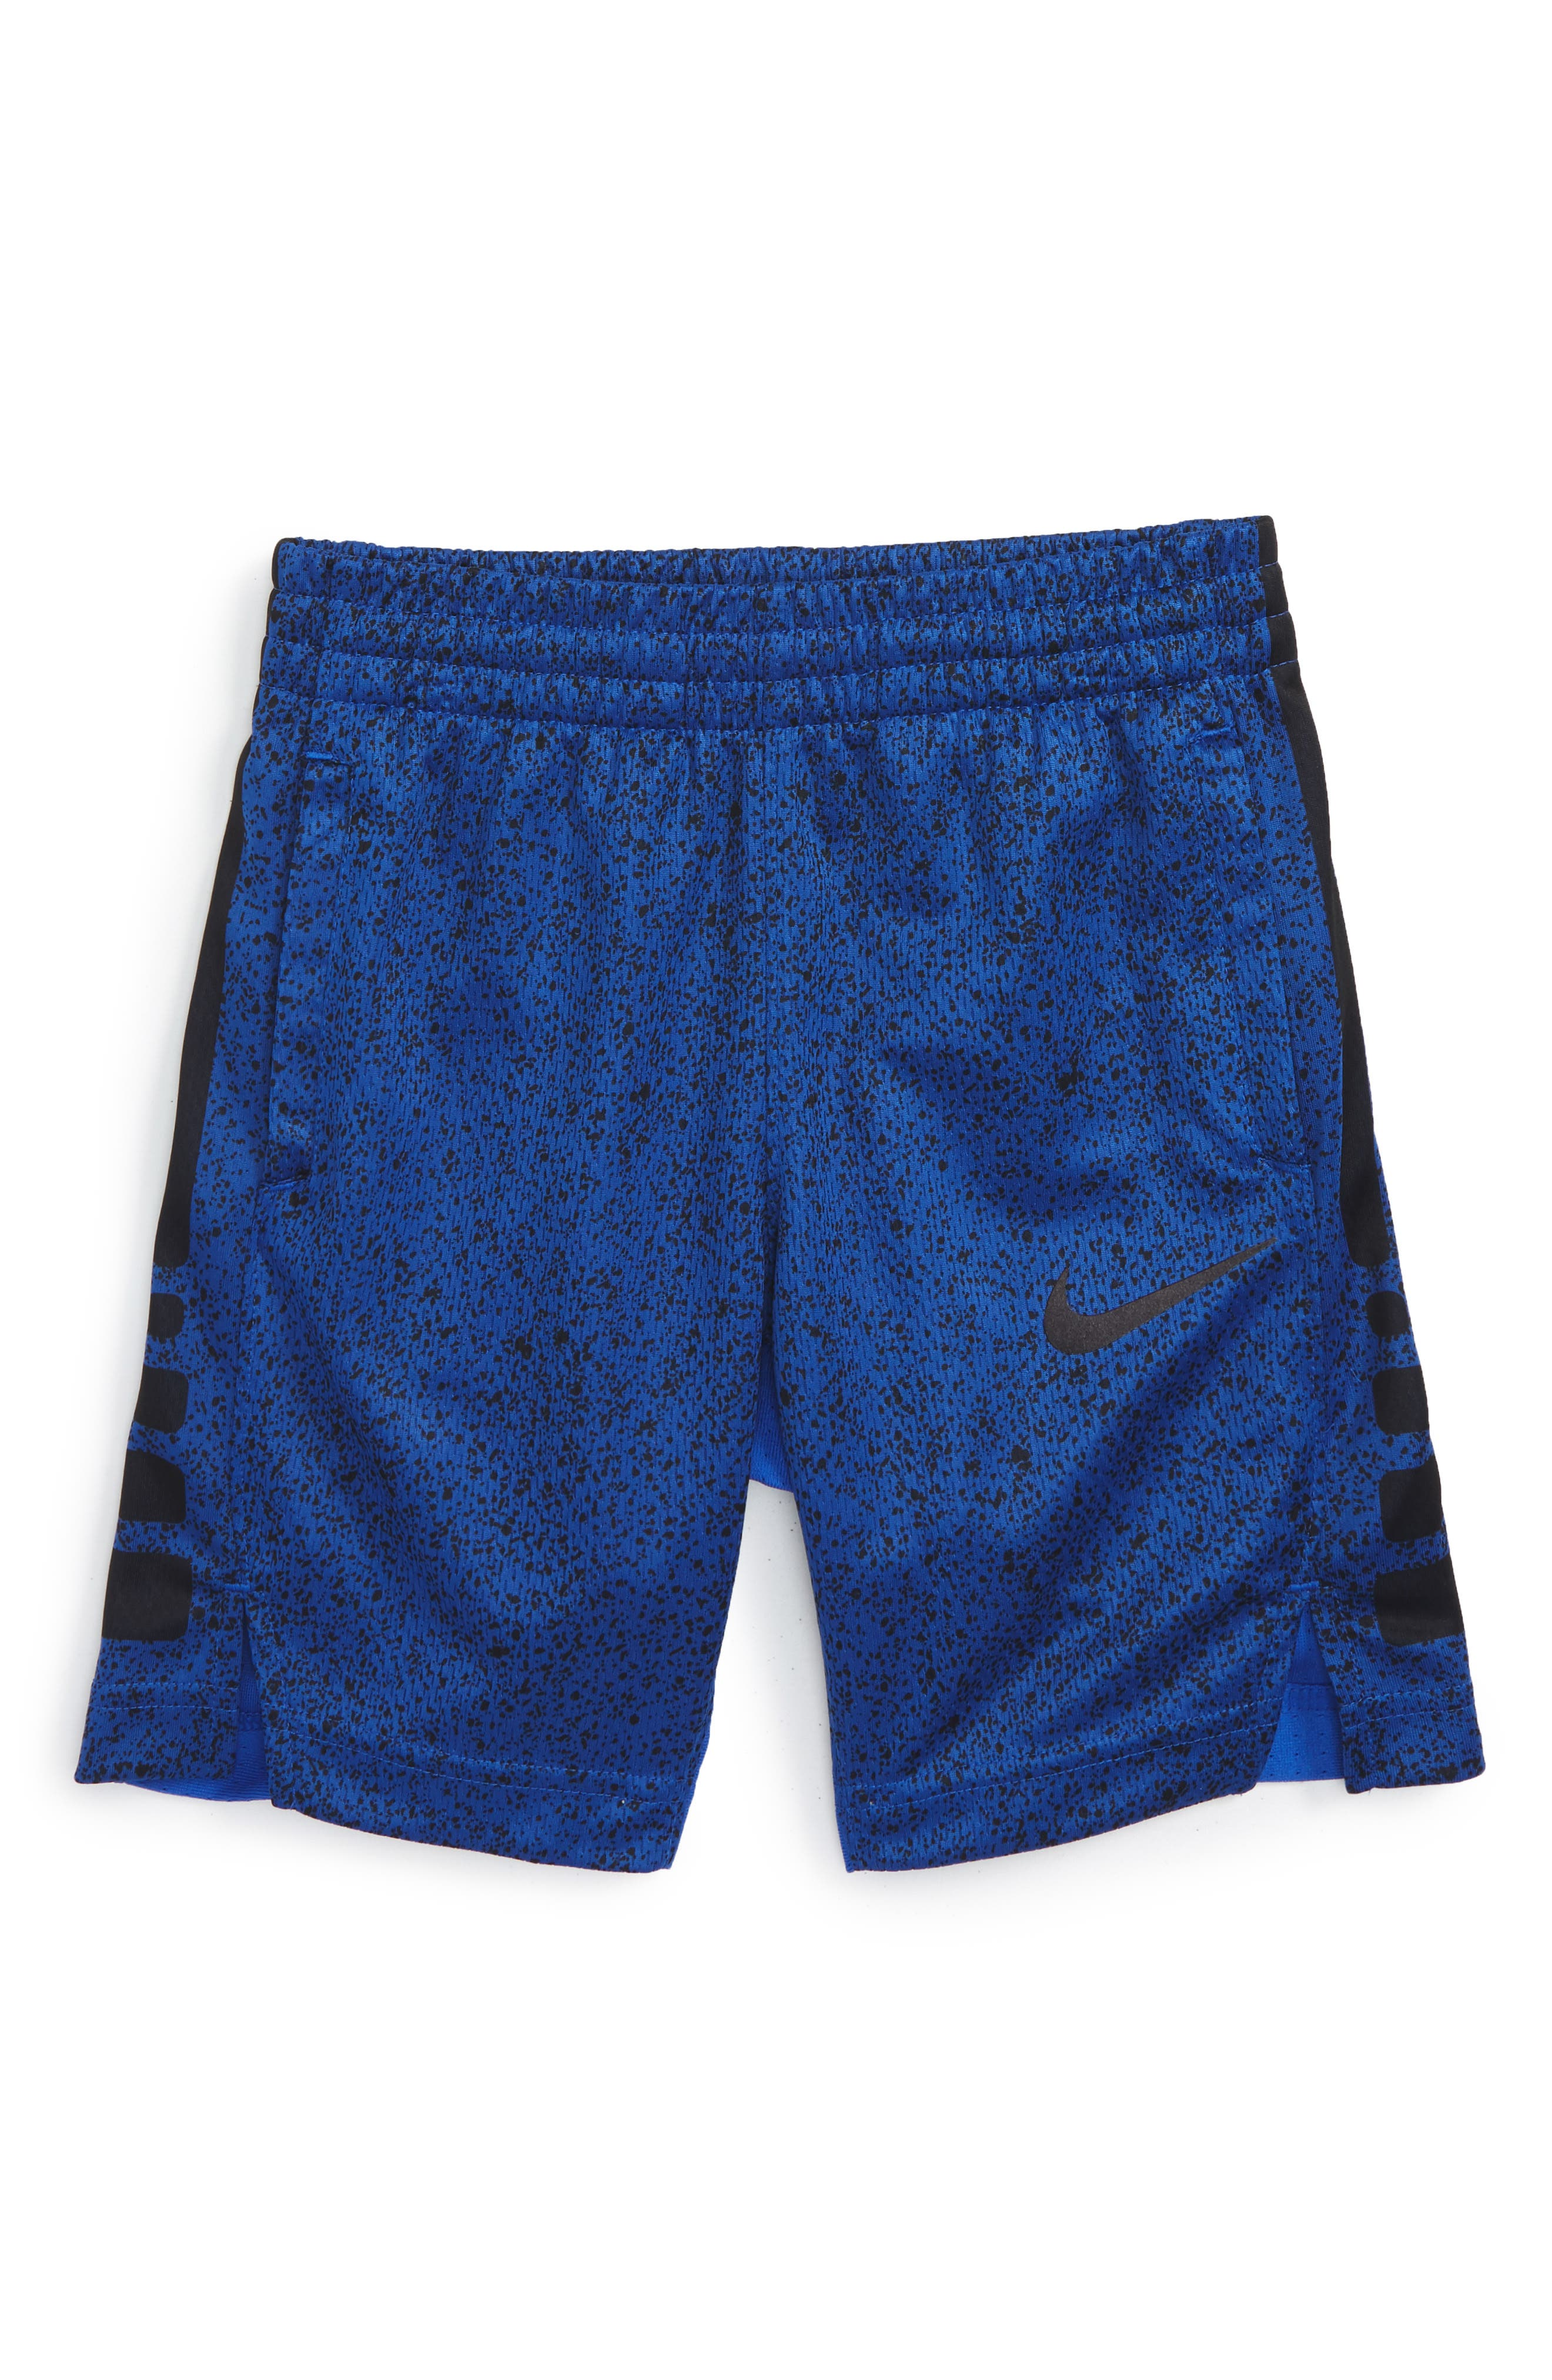 Nike Elite Print Shorts (Toddler Boys & Little Boys)